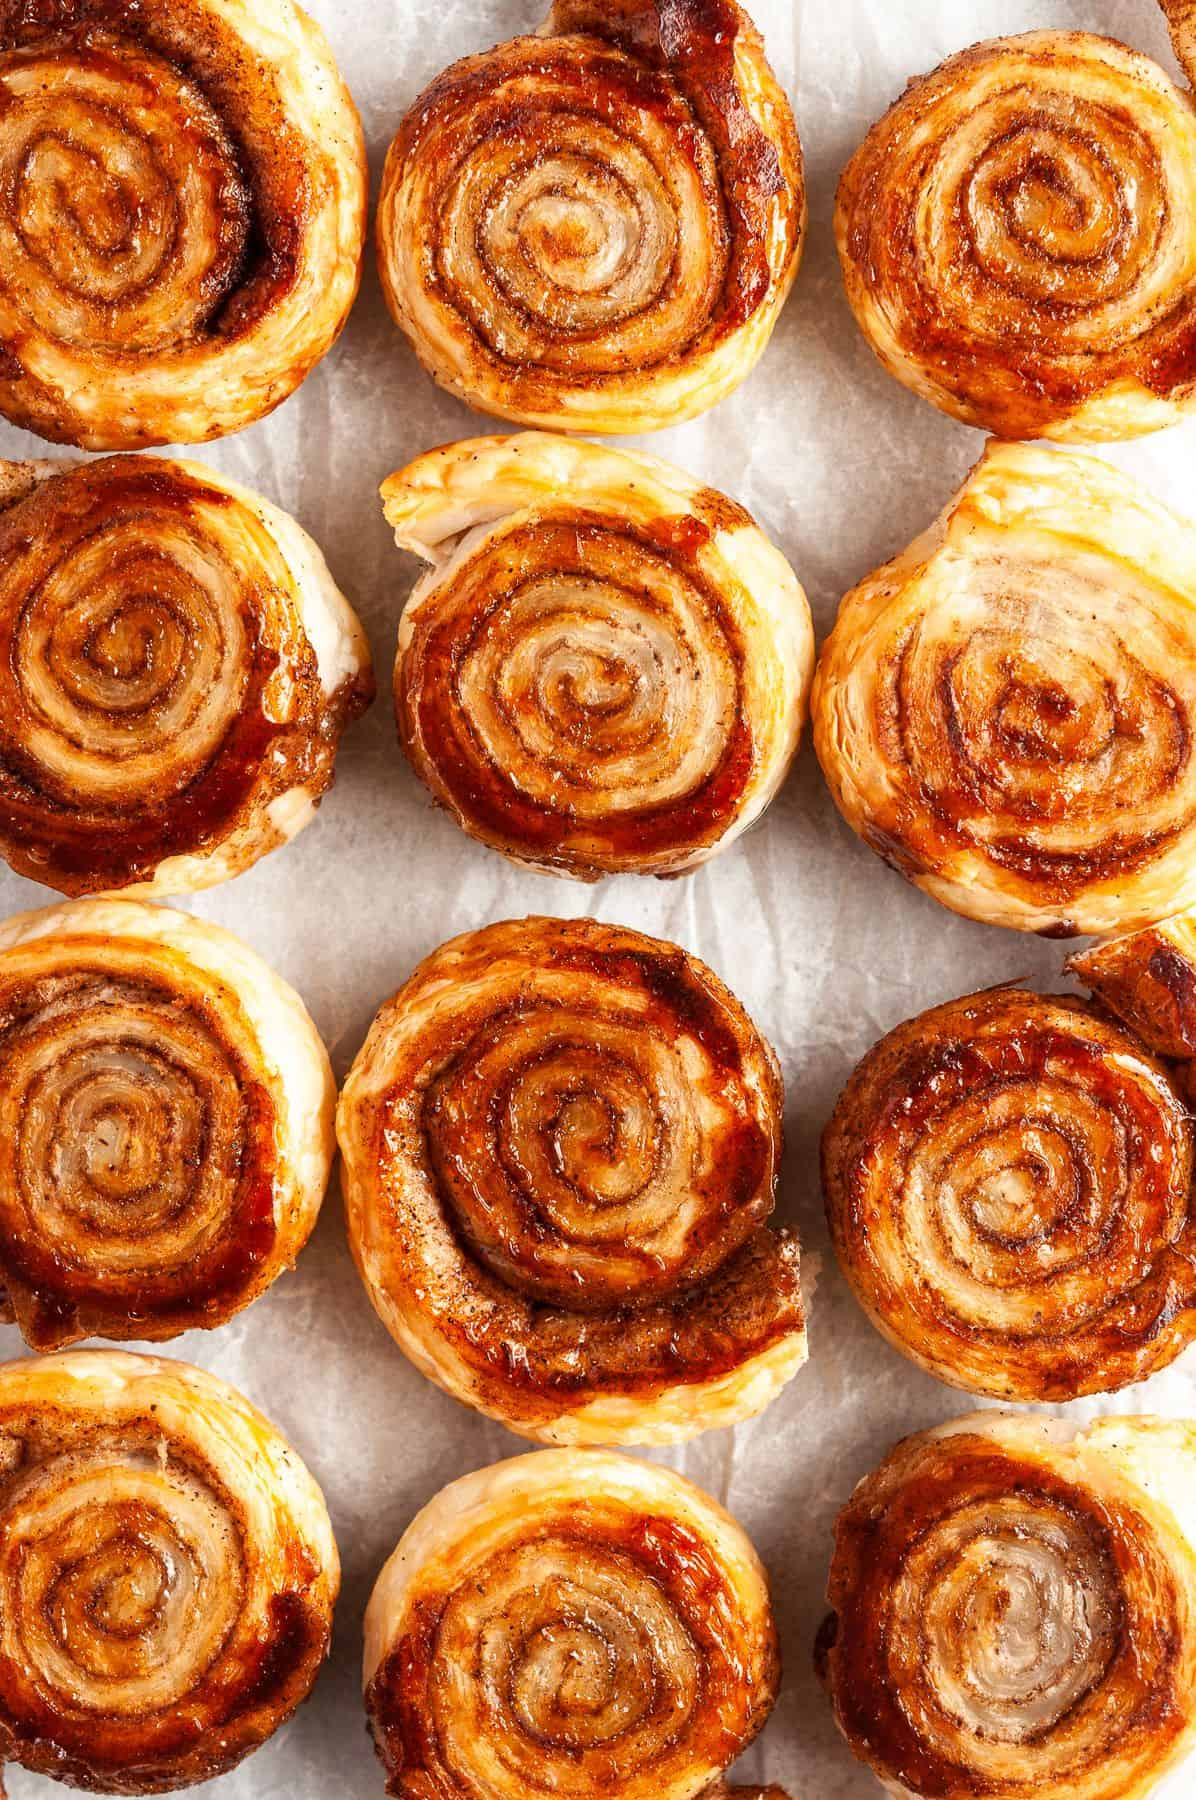 Overhead shot of the baked pinwheels fresh from the oven.